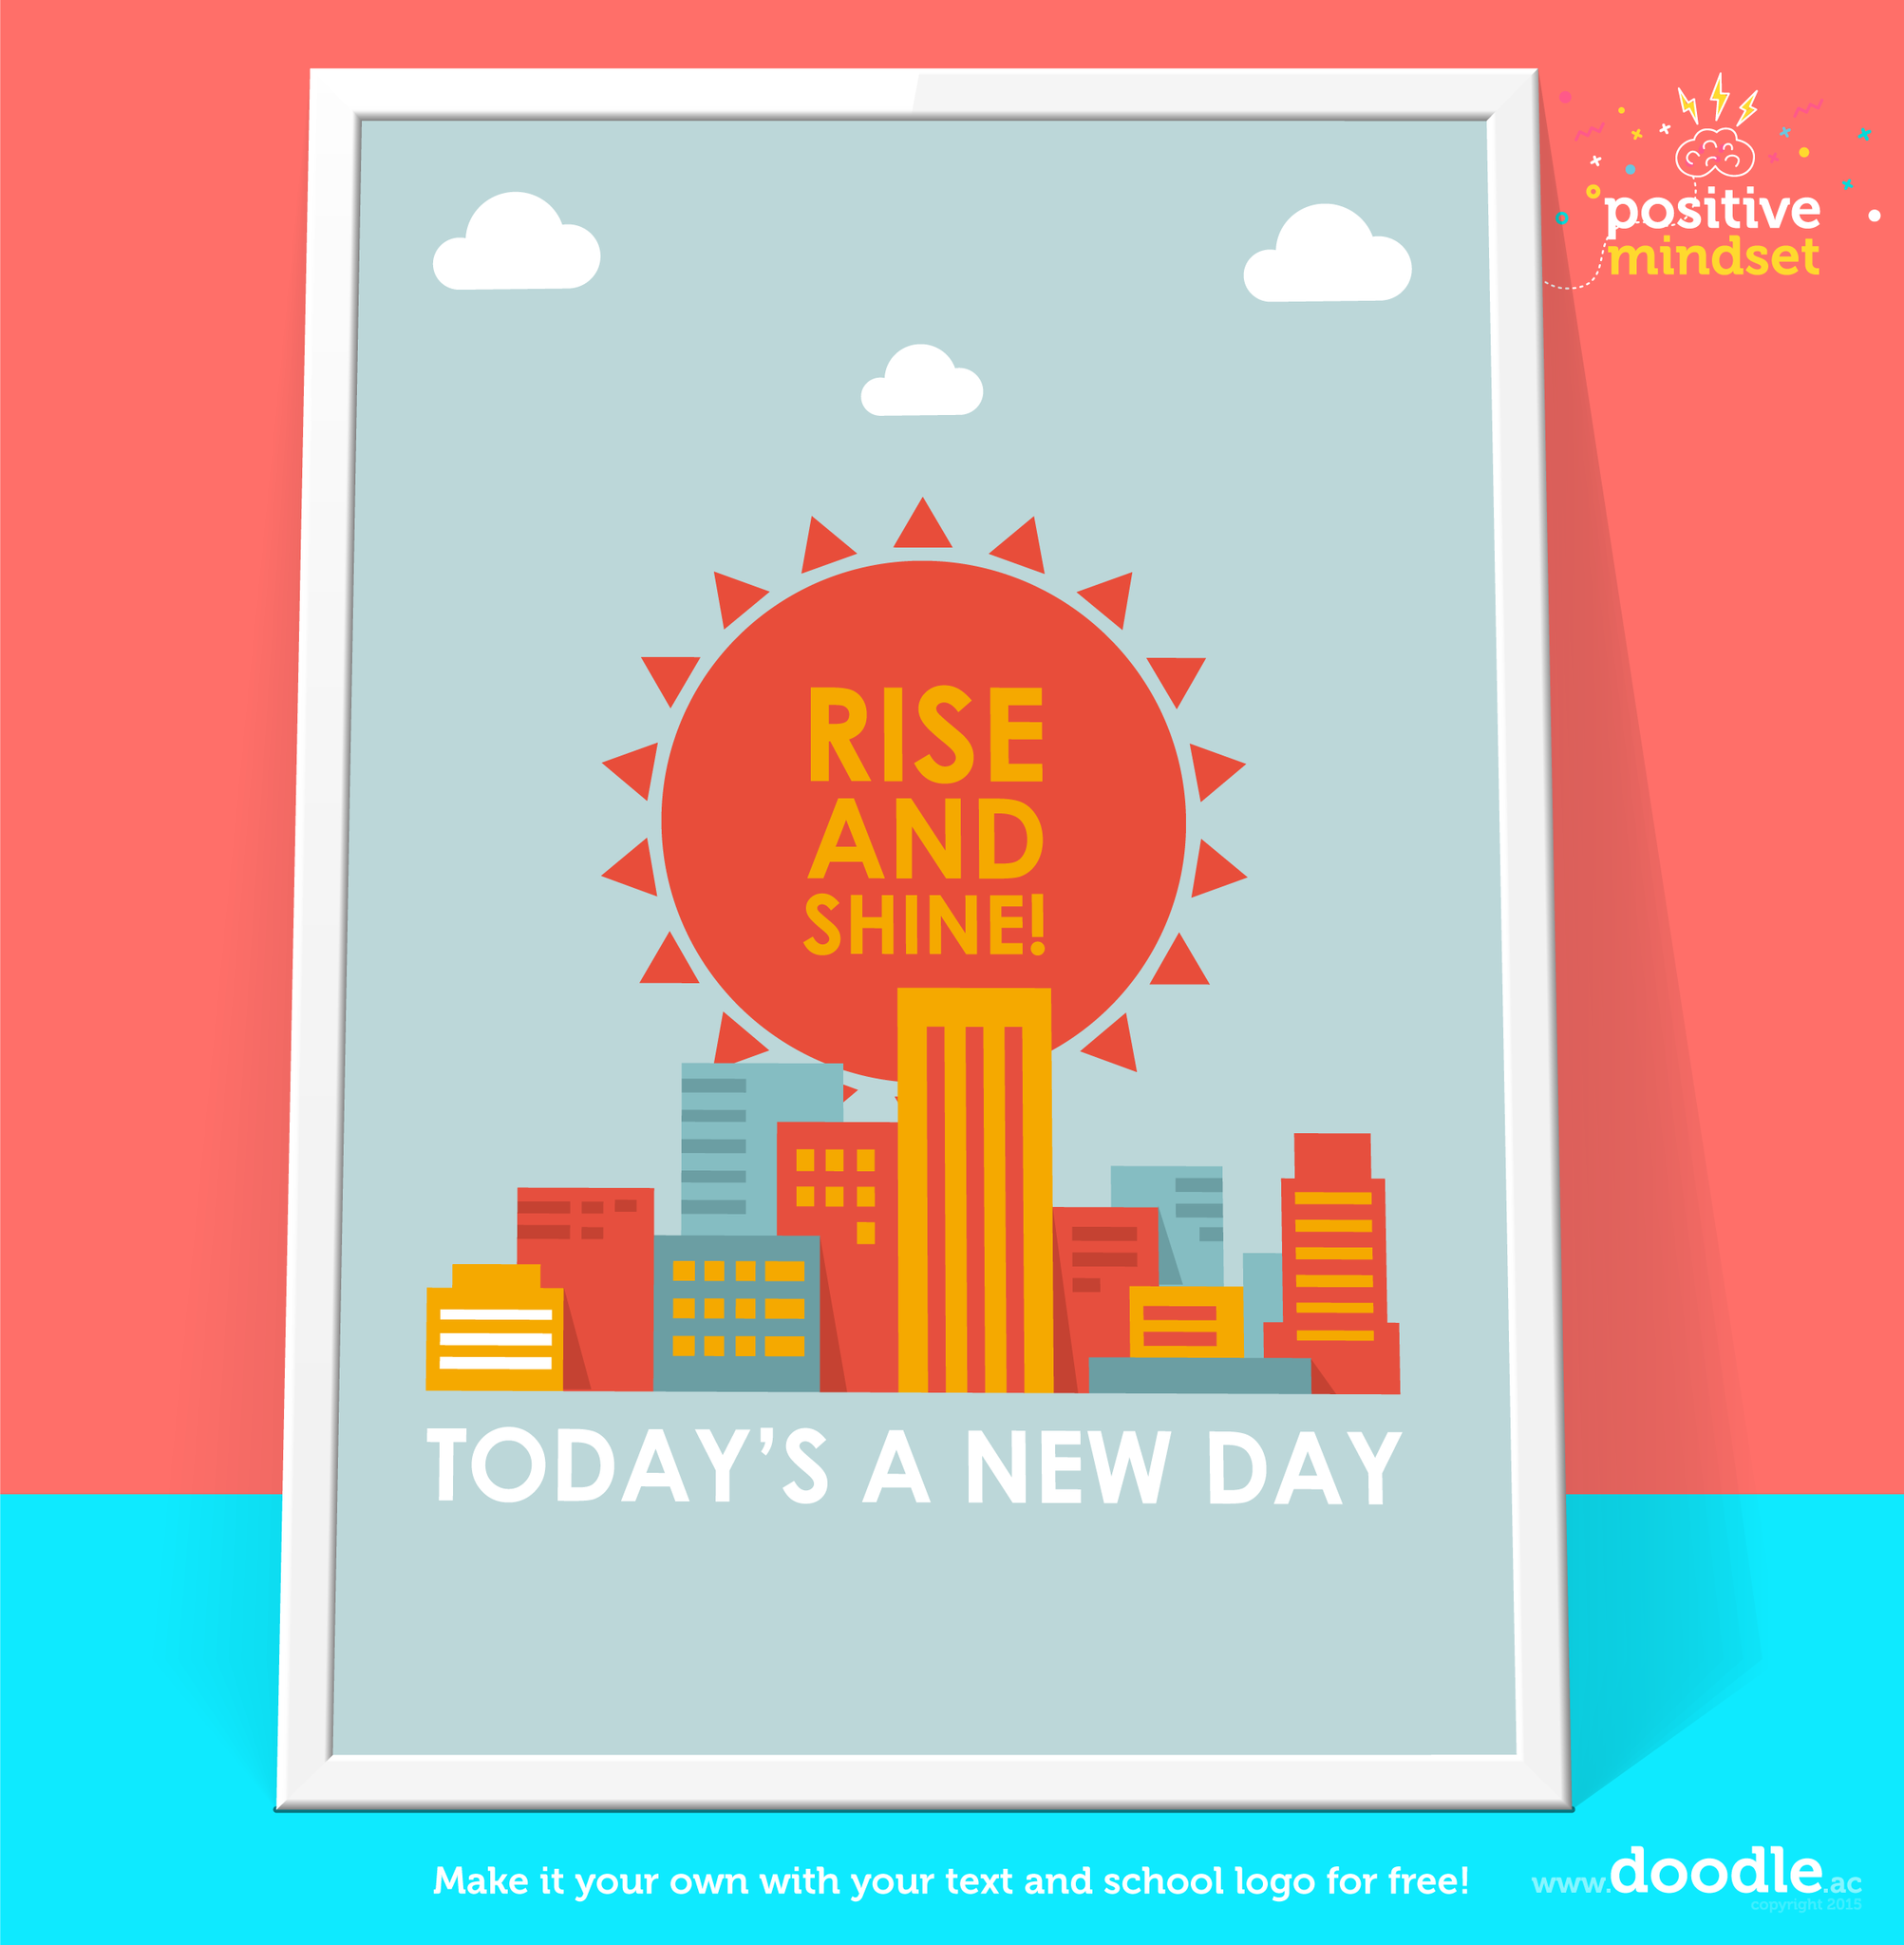 Rise and shine poster - doodle education